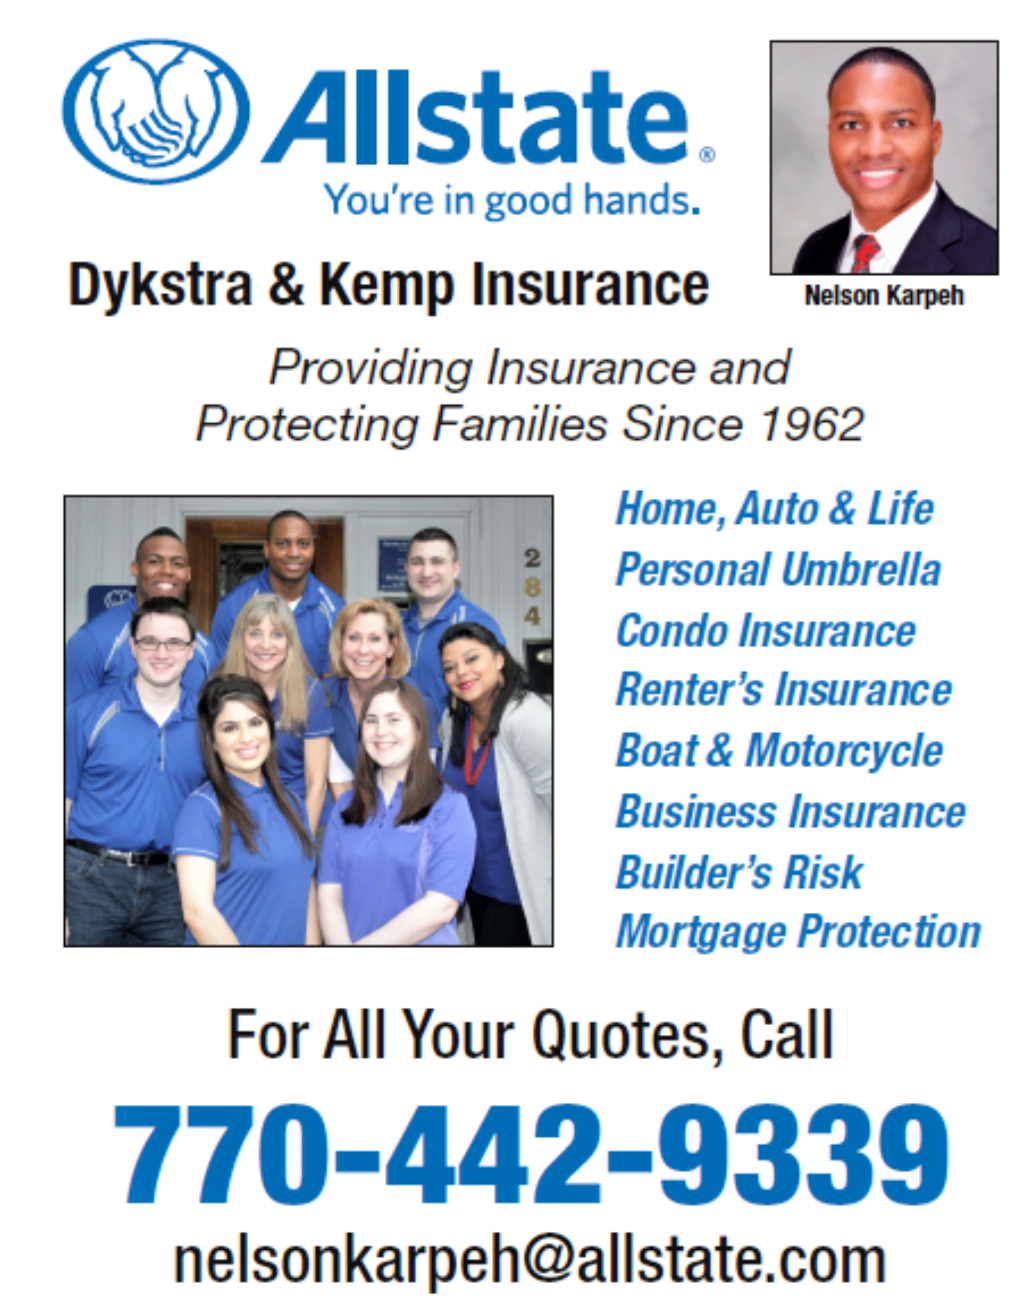 Allstate, Dykstra & Kemp Insurance